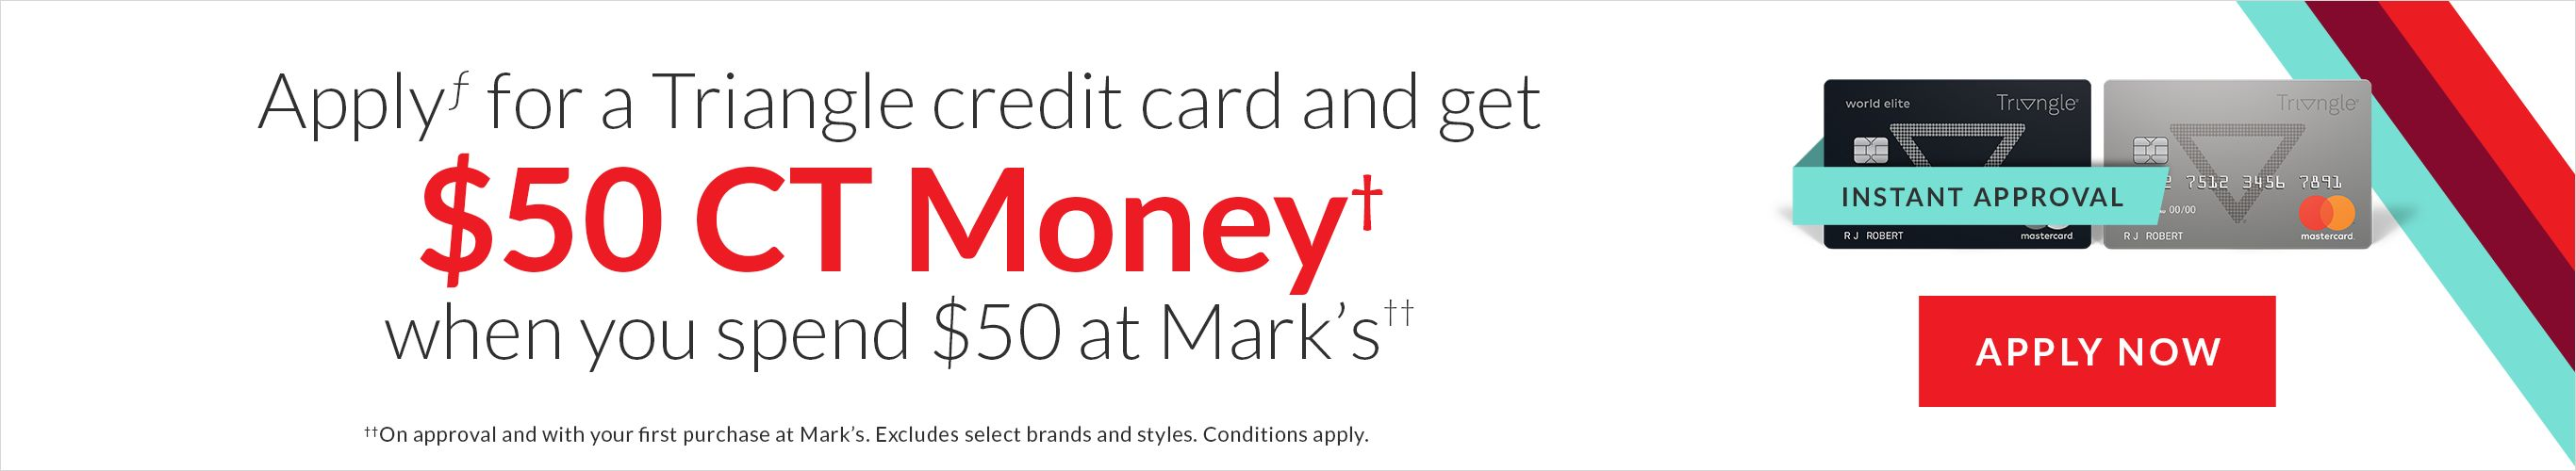 Apply for a Triangle credit card and get $50 CT Money† when you spend $50 at Mark's††. Apply Now.